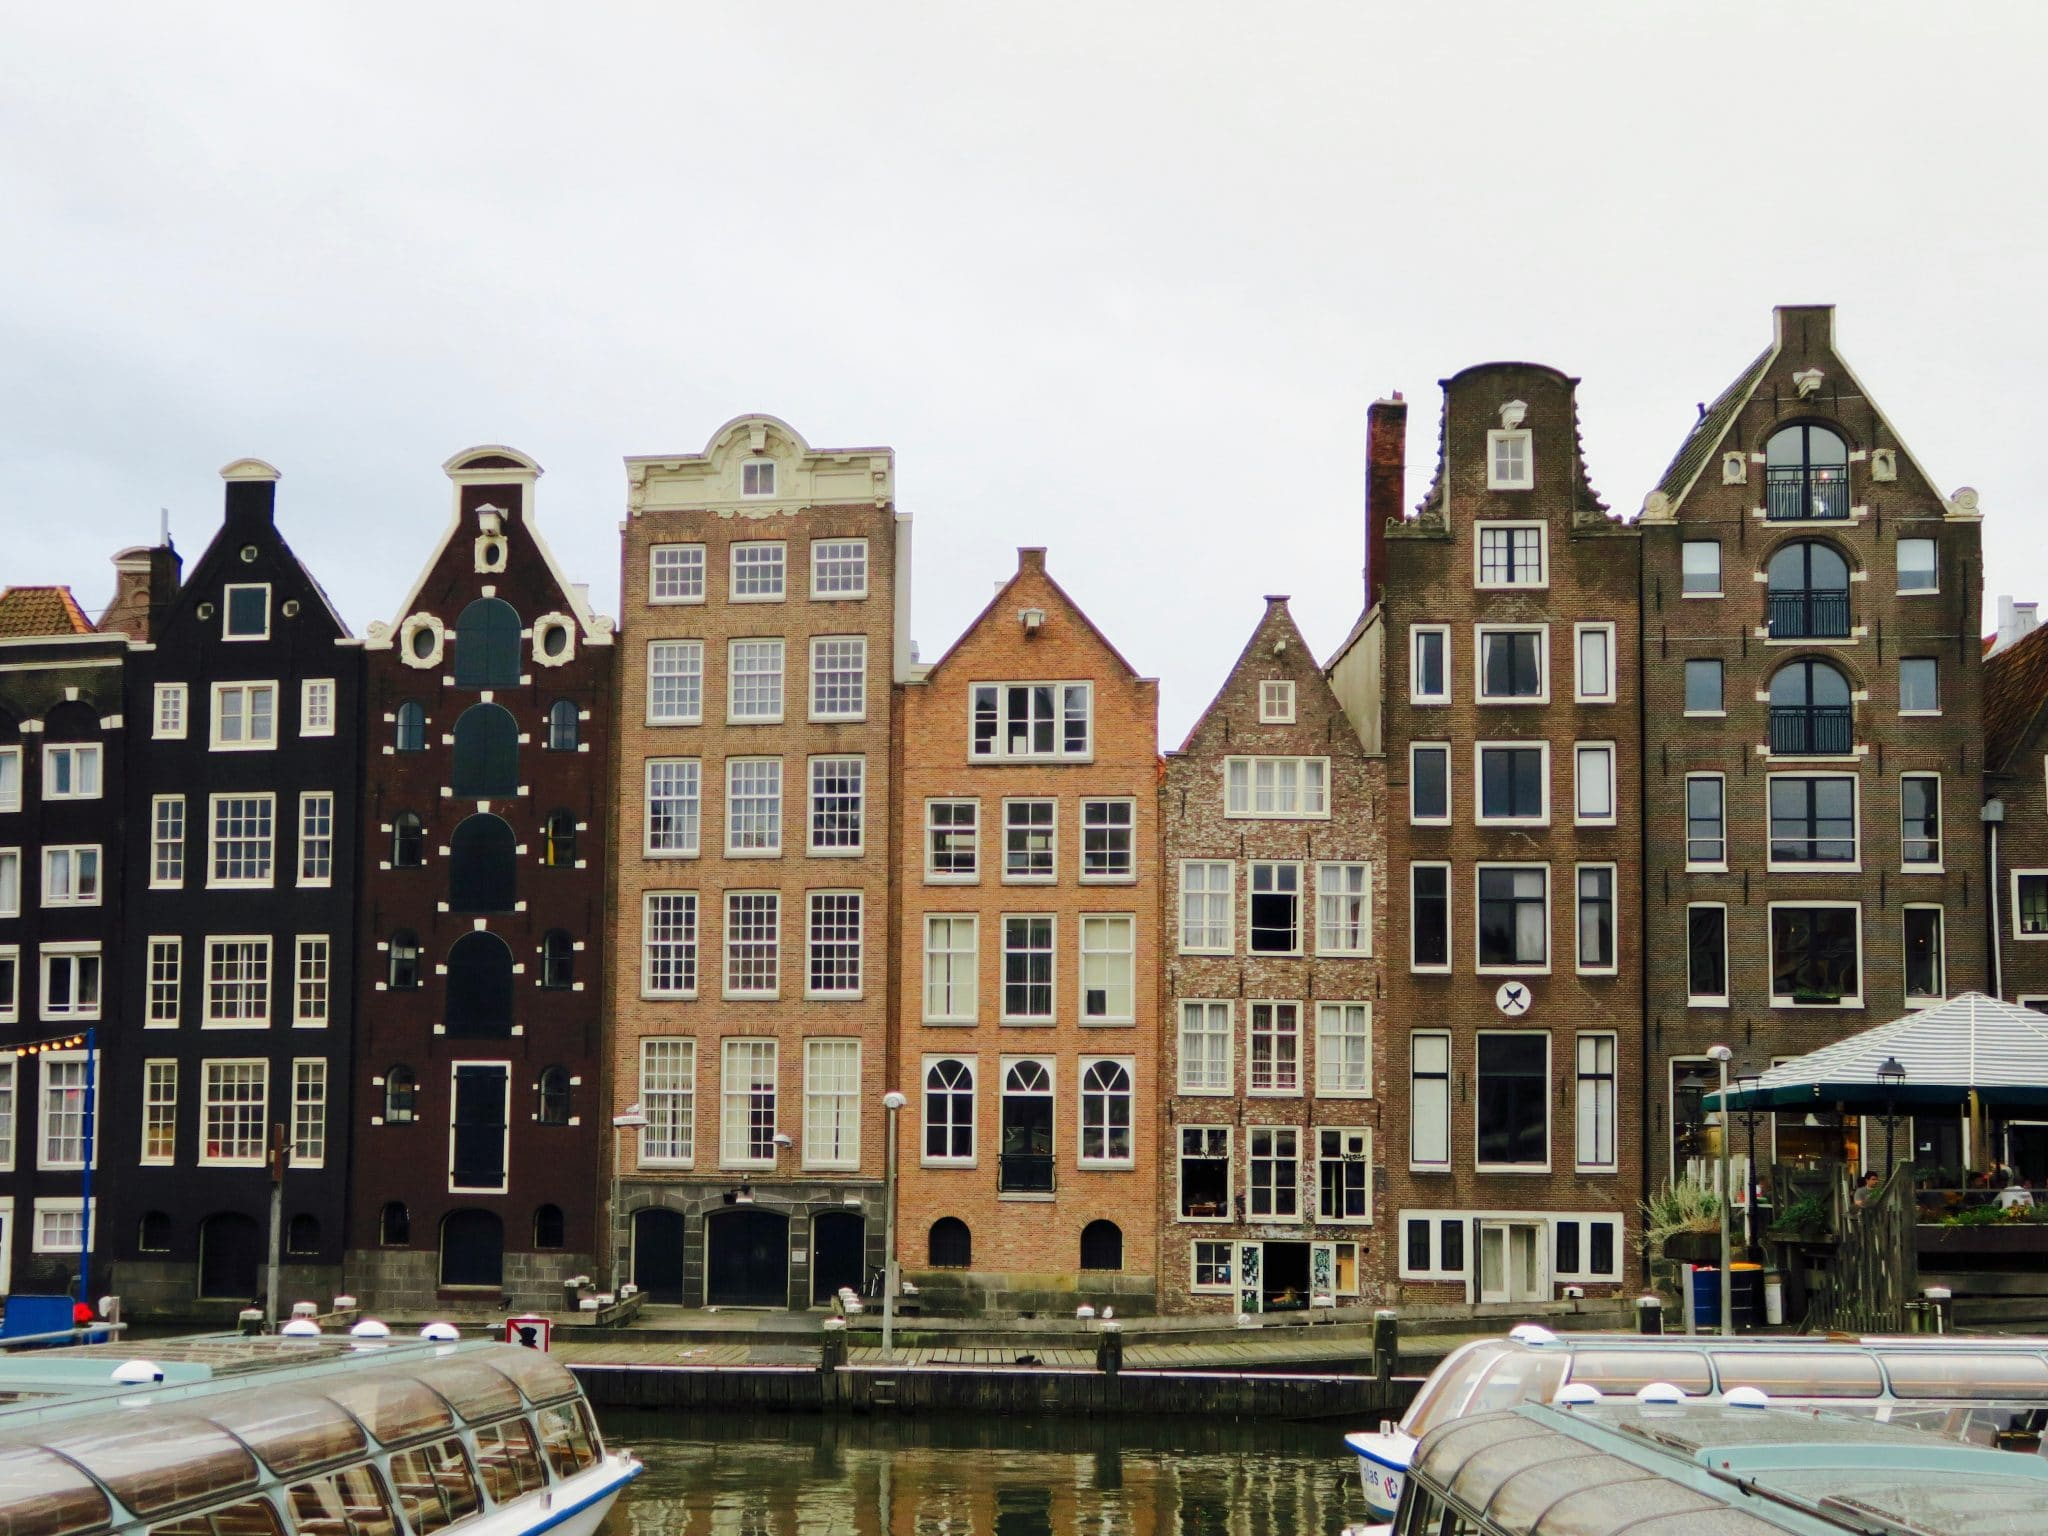 Dutch houses in Amsterdam